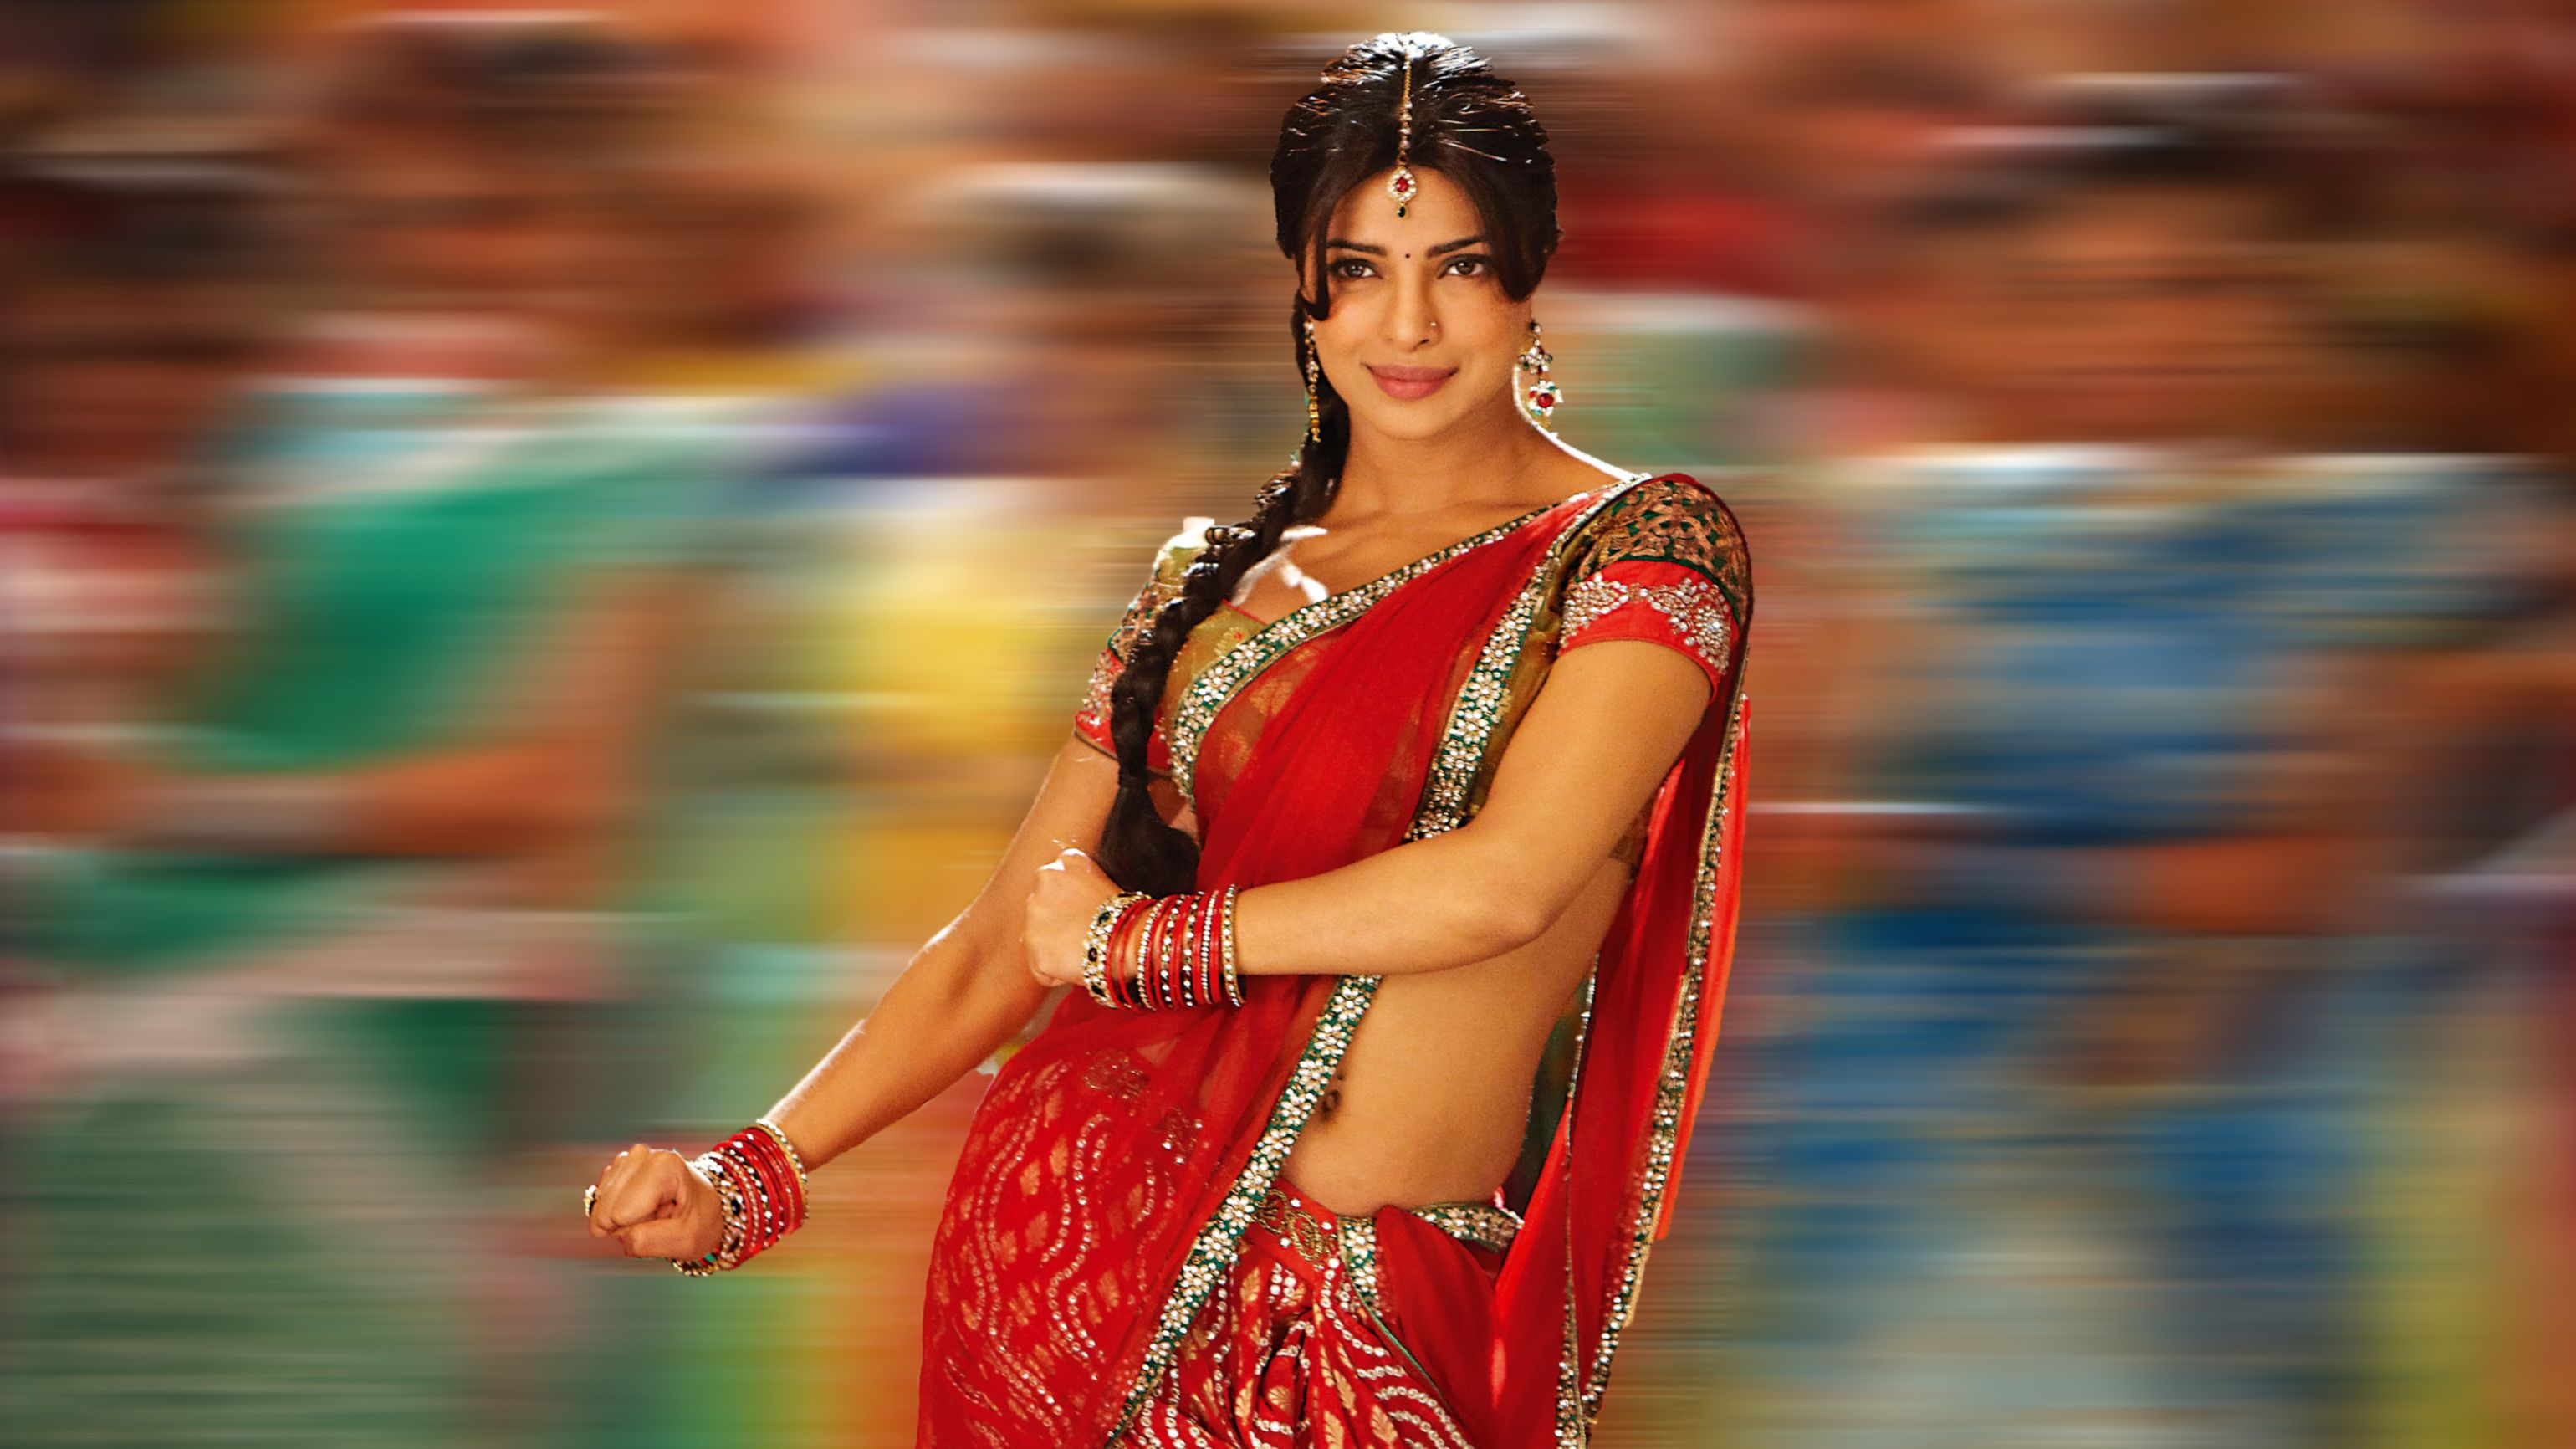 Download free HD Priyanka Chopra in Saree HD Wallpaper, image